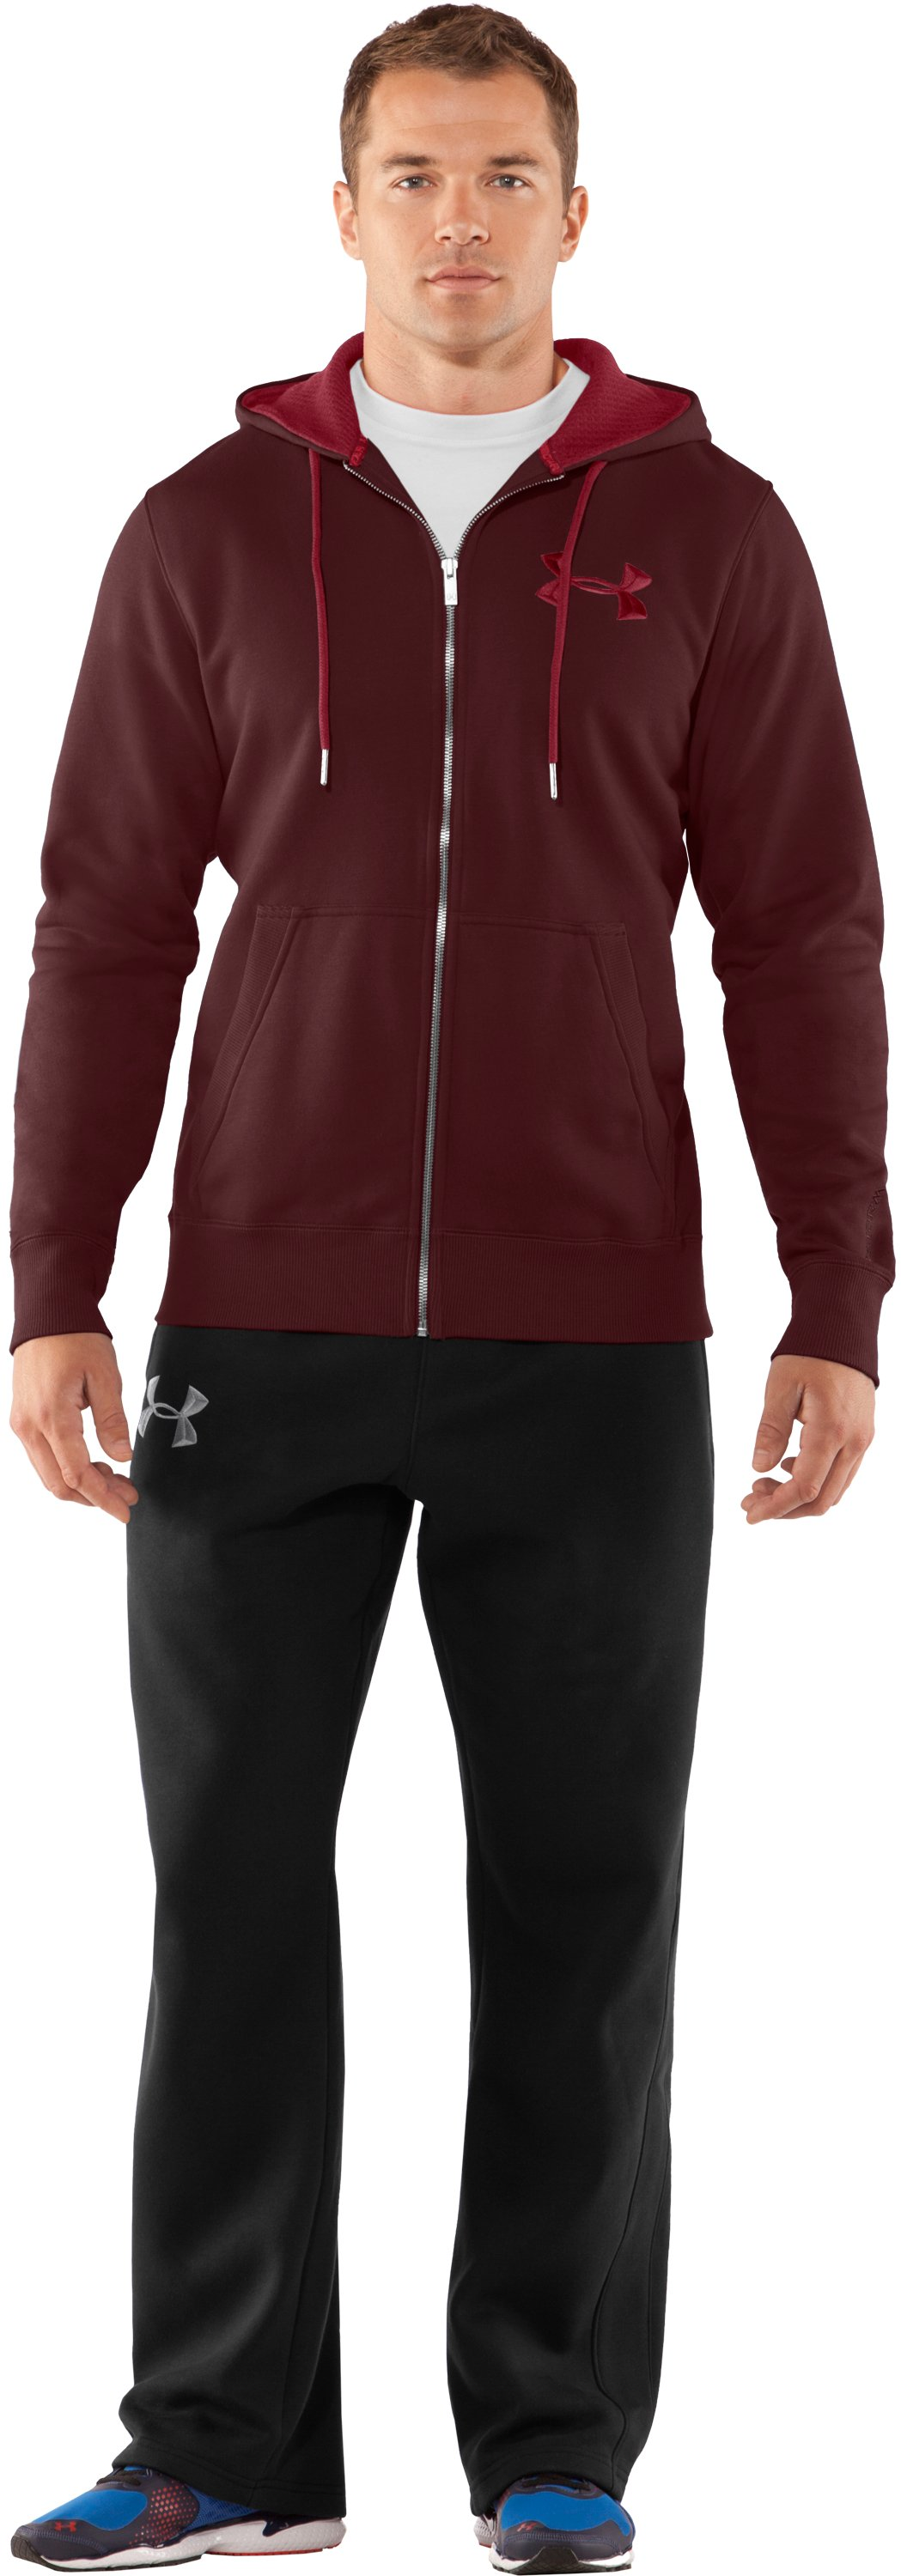 Men's Charged Cotton® Storm Full Zip Hoodie, Ox Blood, Front